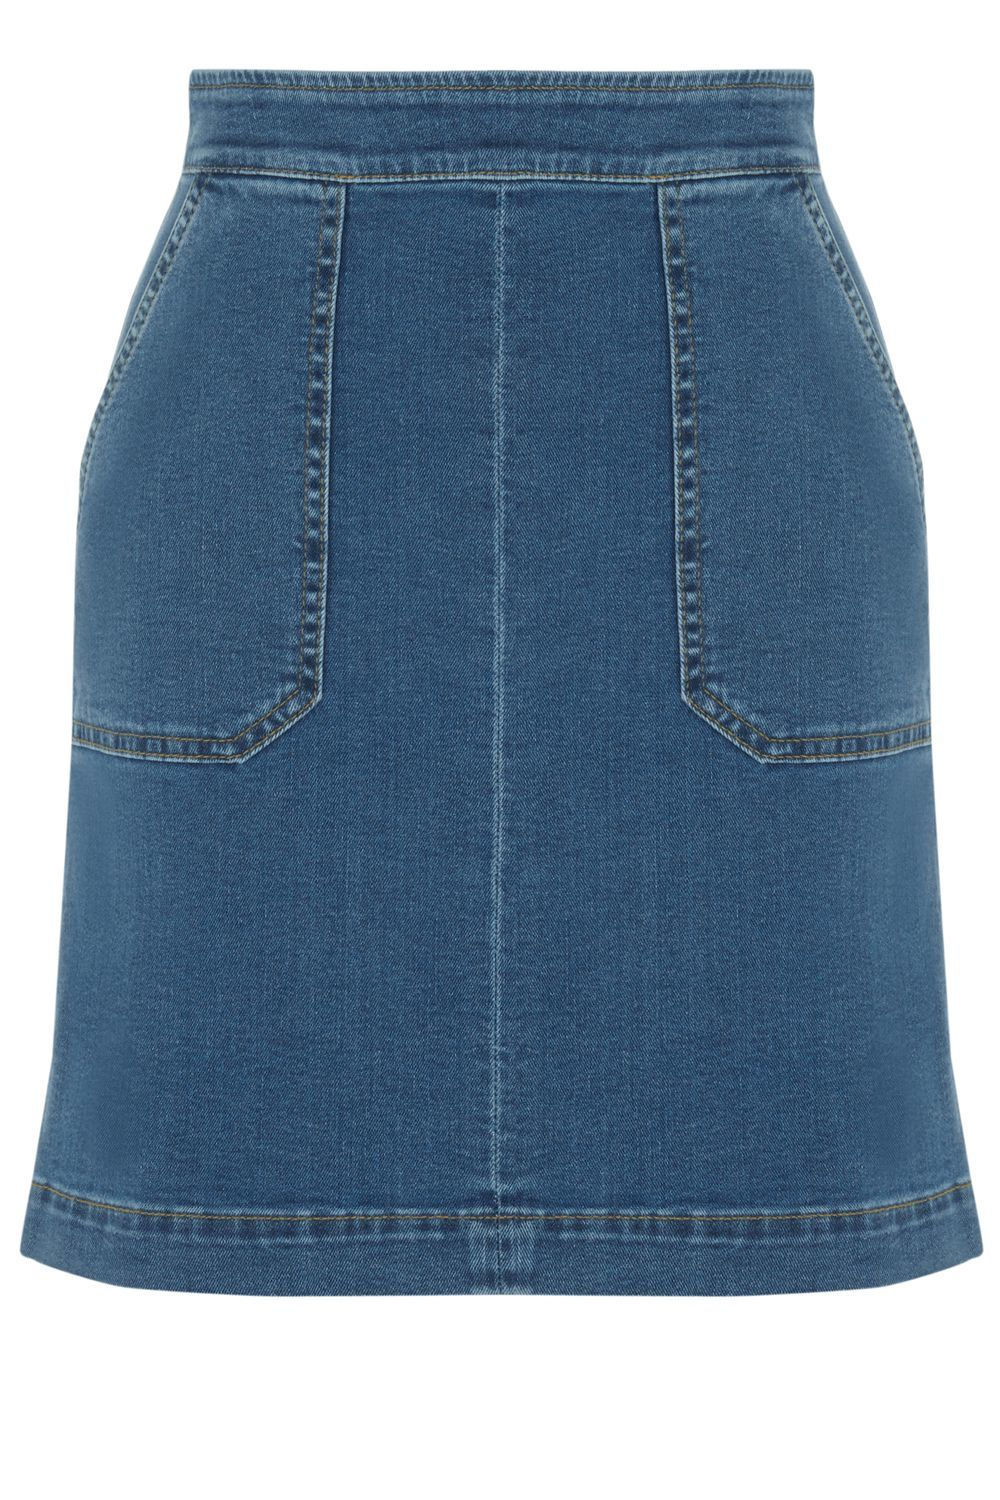 Pocket Detail Denim Skirt, Denim Light Wash - length: mid thigh; pattern: plain; fit: loose/voluminous; waist: high rise; predominant colour: denim; occasions: casual; style: a-line; fibres: cotton - 100%; texture group: denim; pattern type: fabric; season: s/s 2016; wardrobe: basic